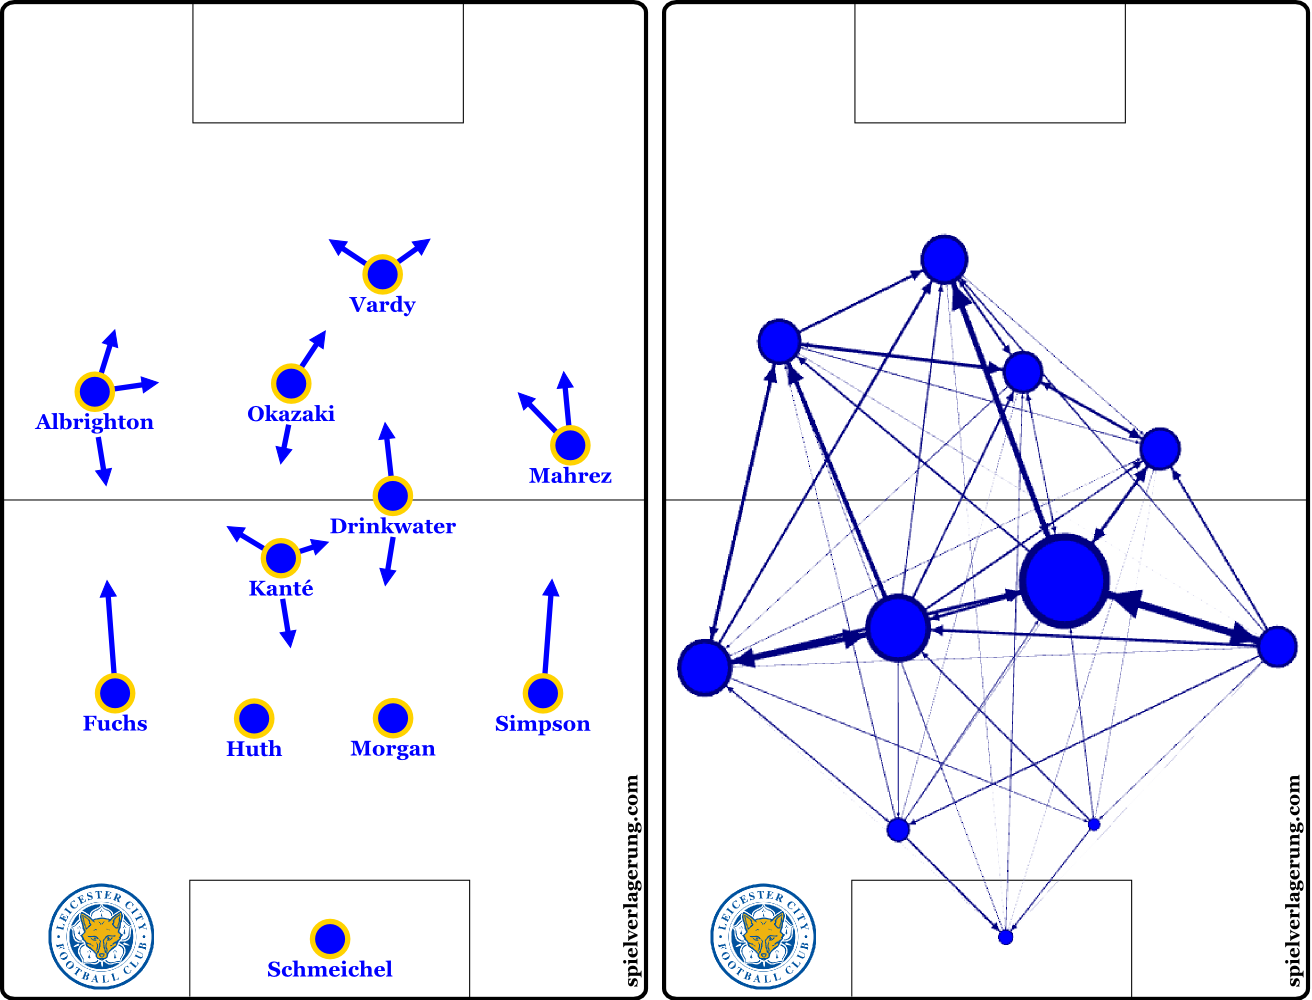 2016-04-10_Leicester_Formation-Network